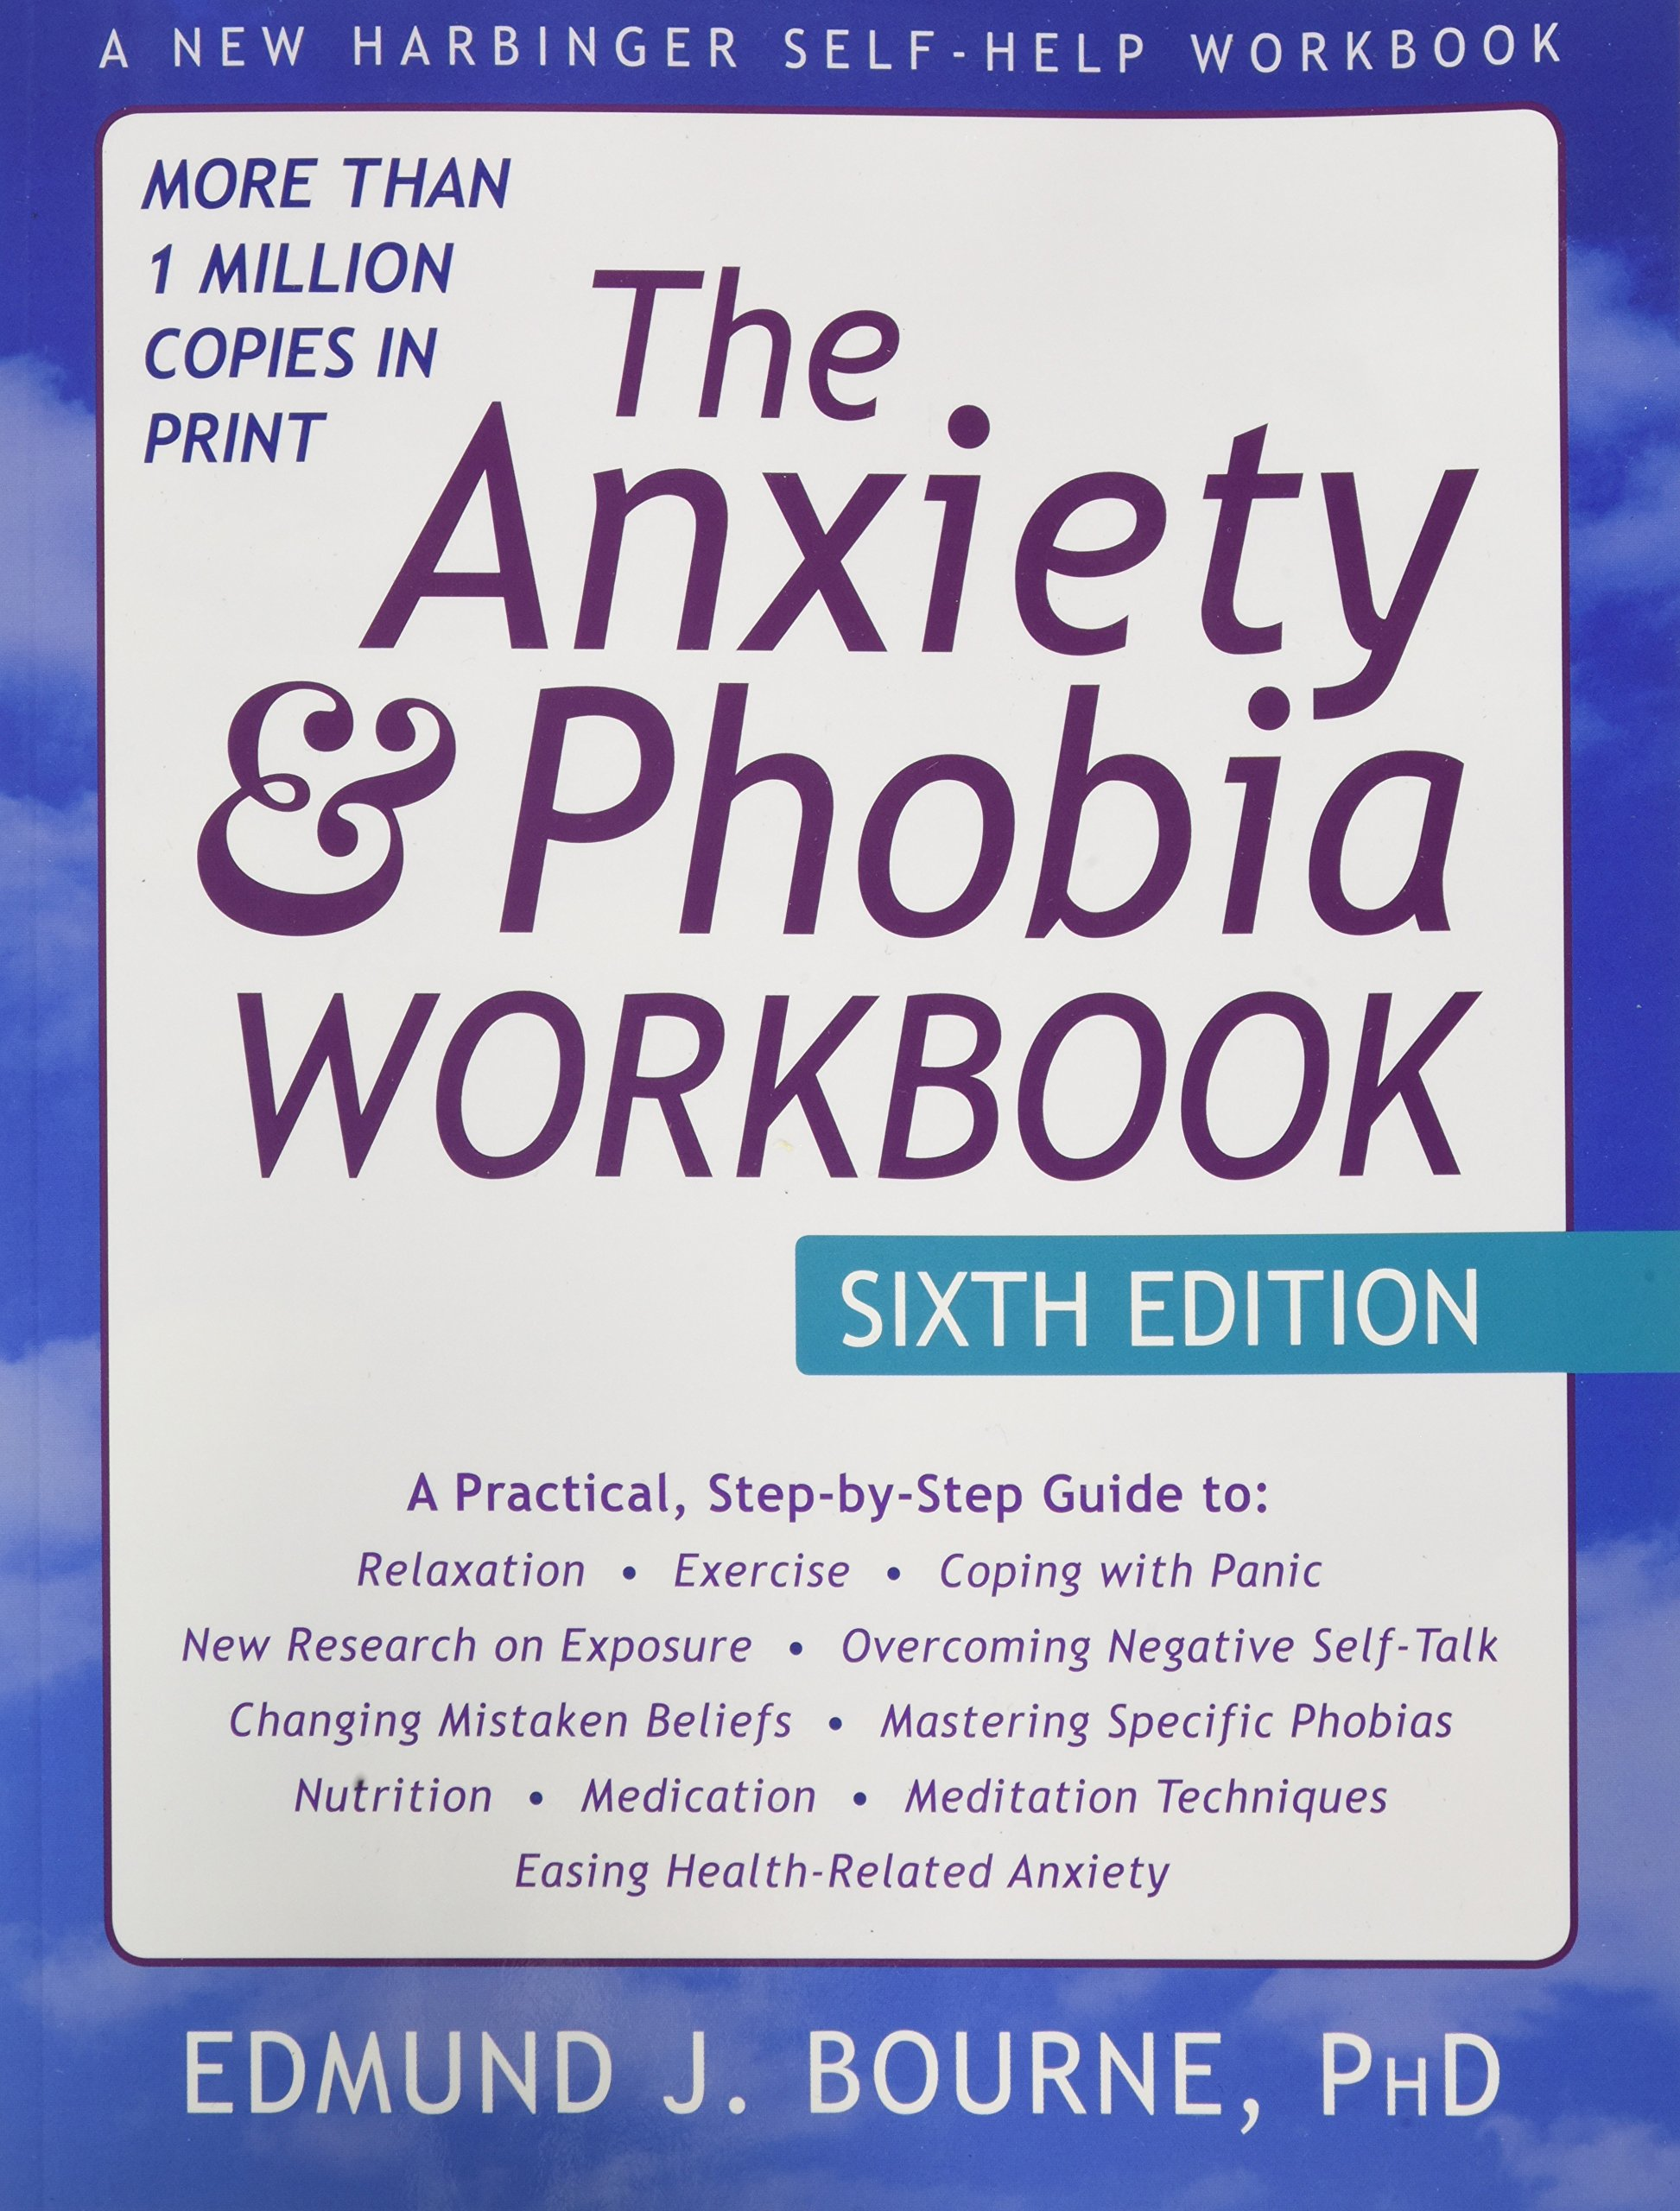 The Anxiety and Phobia Workbook: 6th Edition: Edmund Bourne PhD:  9781626252158: Books - Amazon.ca